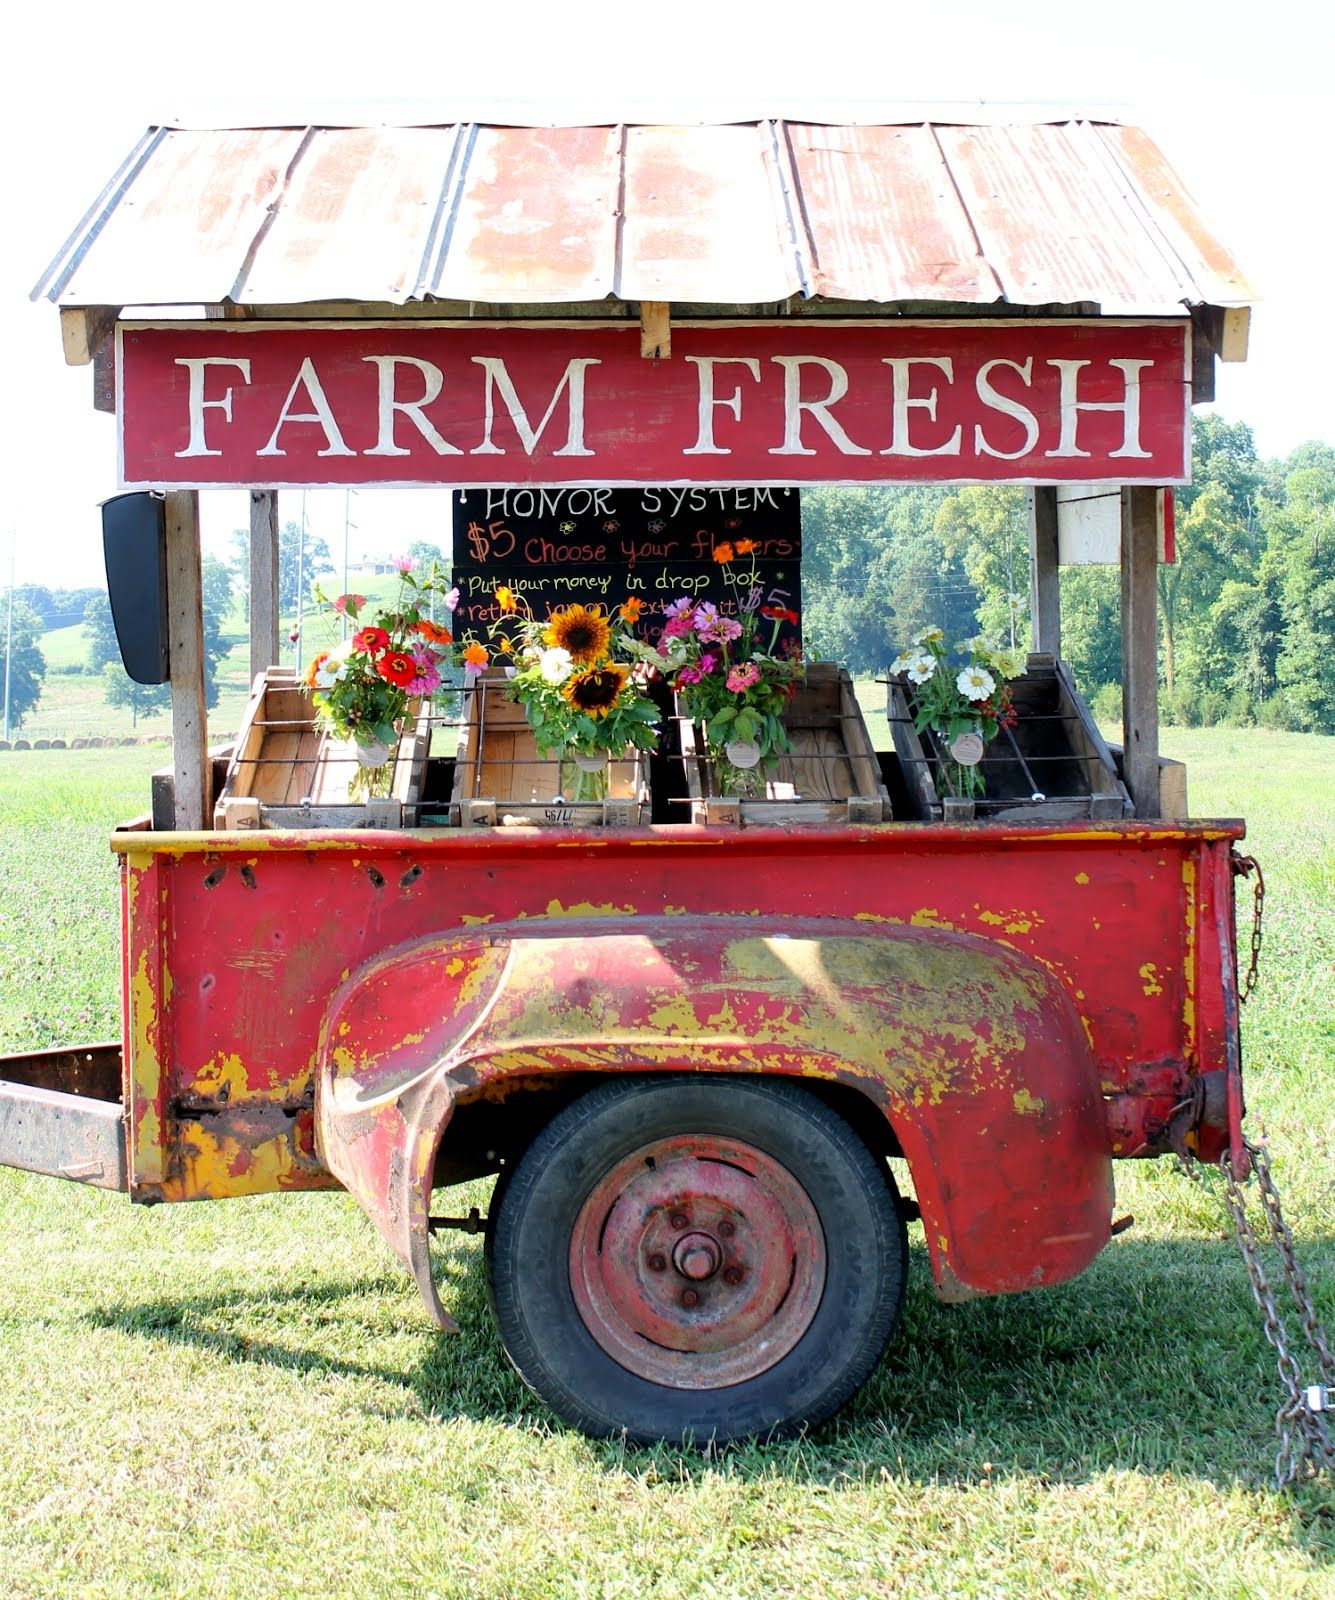 So stinking cute adorable honor system farm stand for